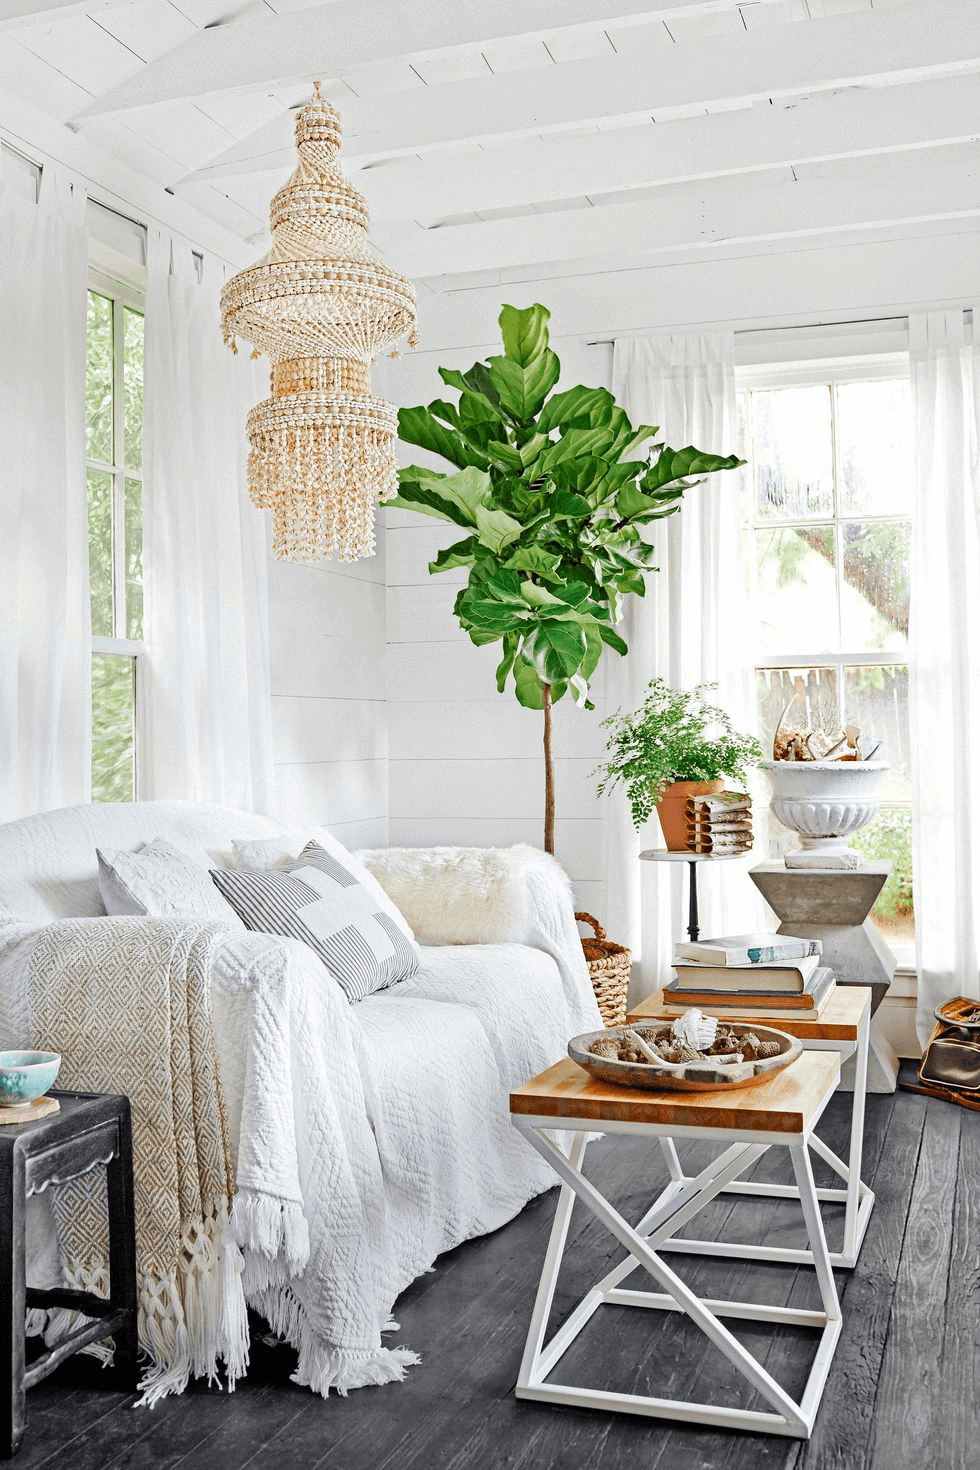 WHITE SOFA TINY HOUSE LIVING ROOM DECOR IDEAS